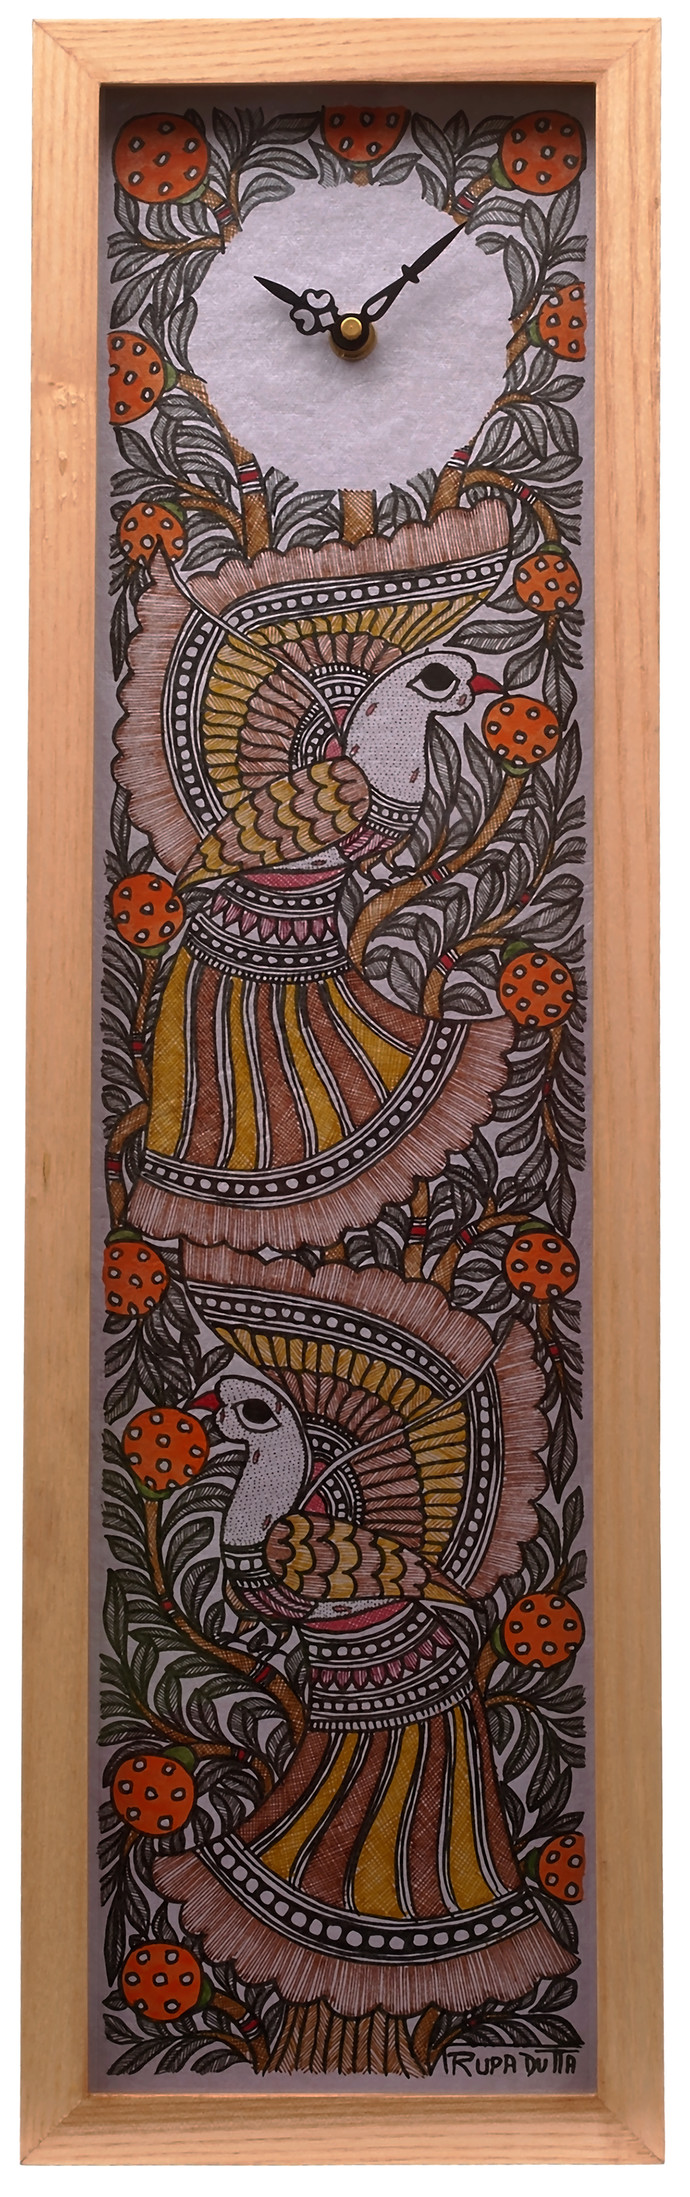 Madhubani Wall Clock Peacock Wall Decor By Crafel